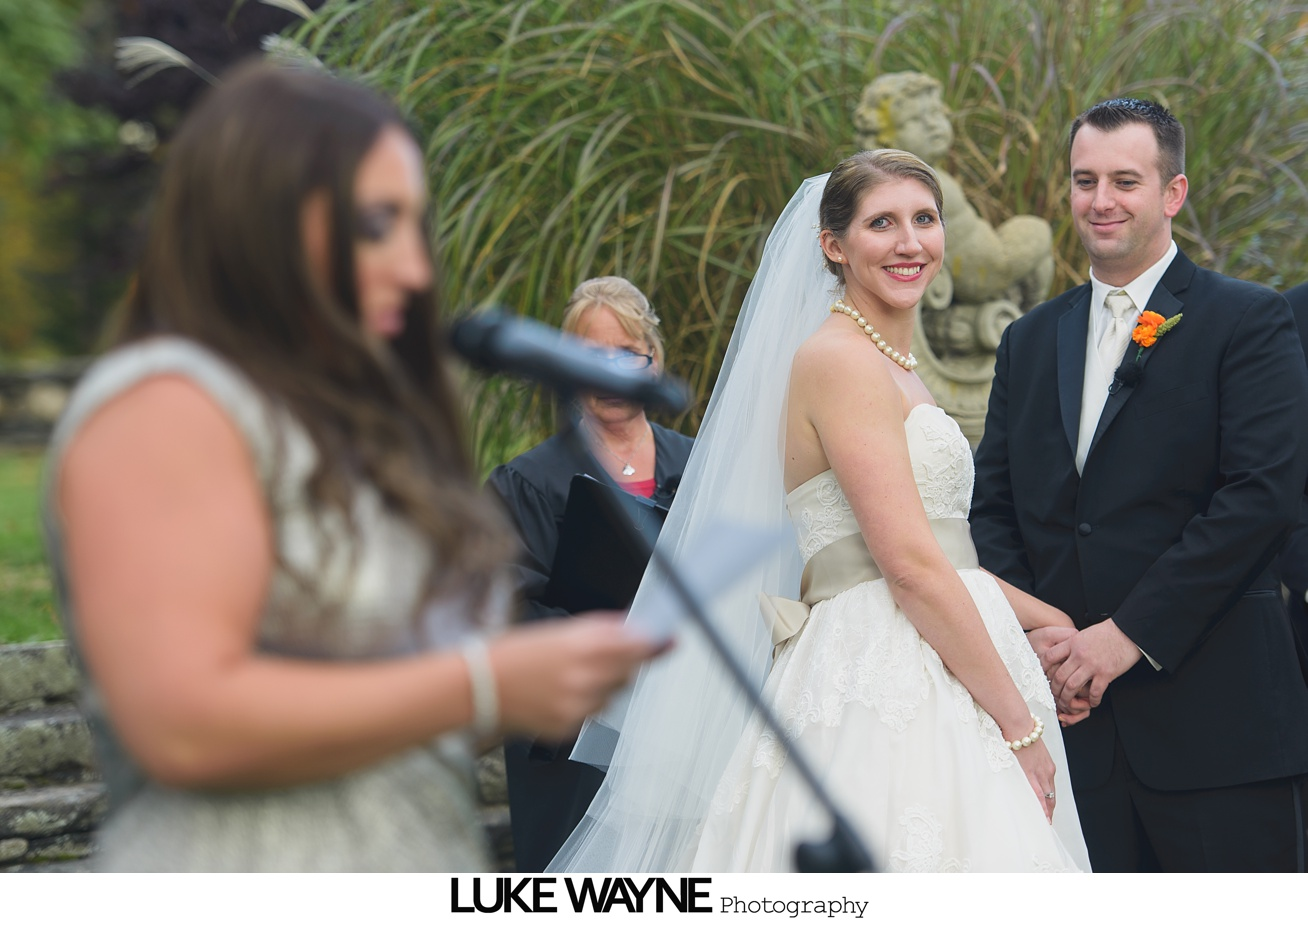 Saint_Clements_St_Wedding_Lyman_Orchards_Fall_Autumn_29